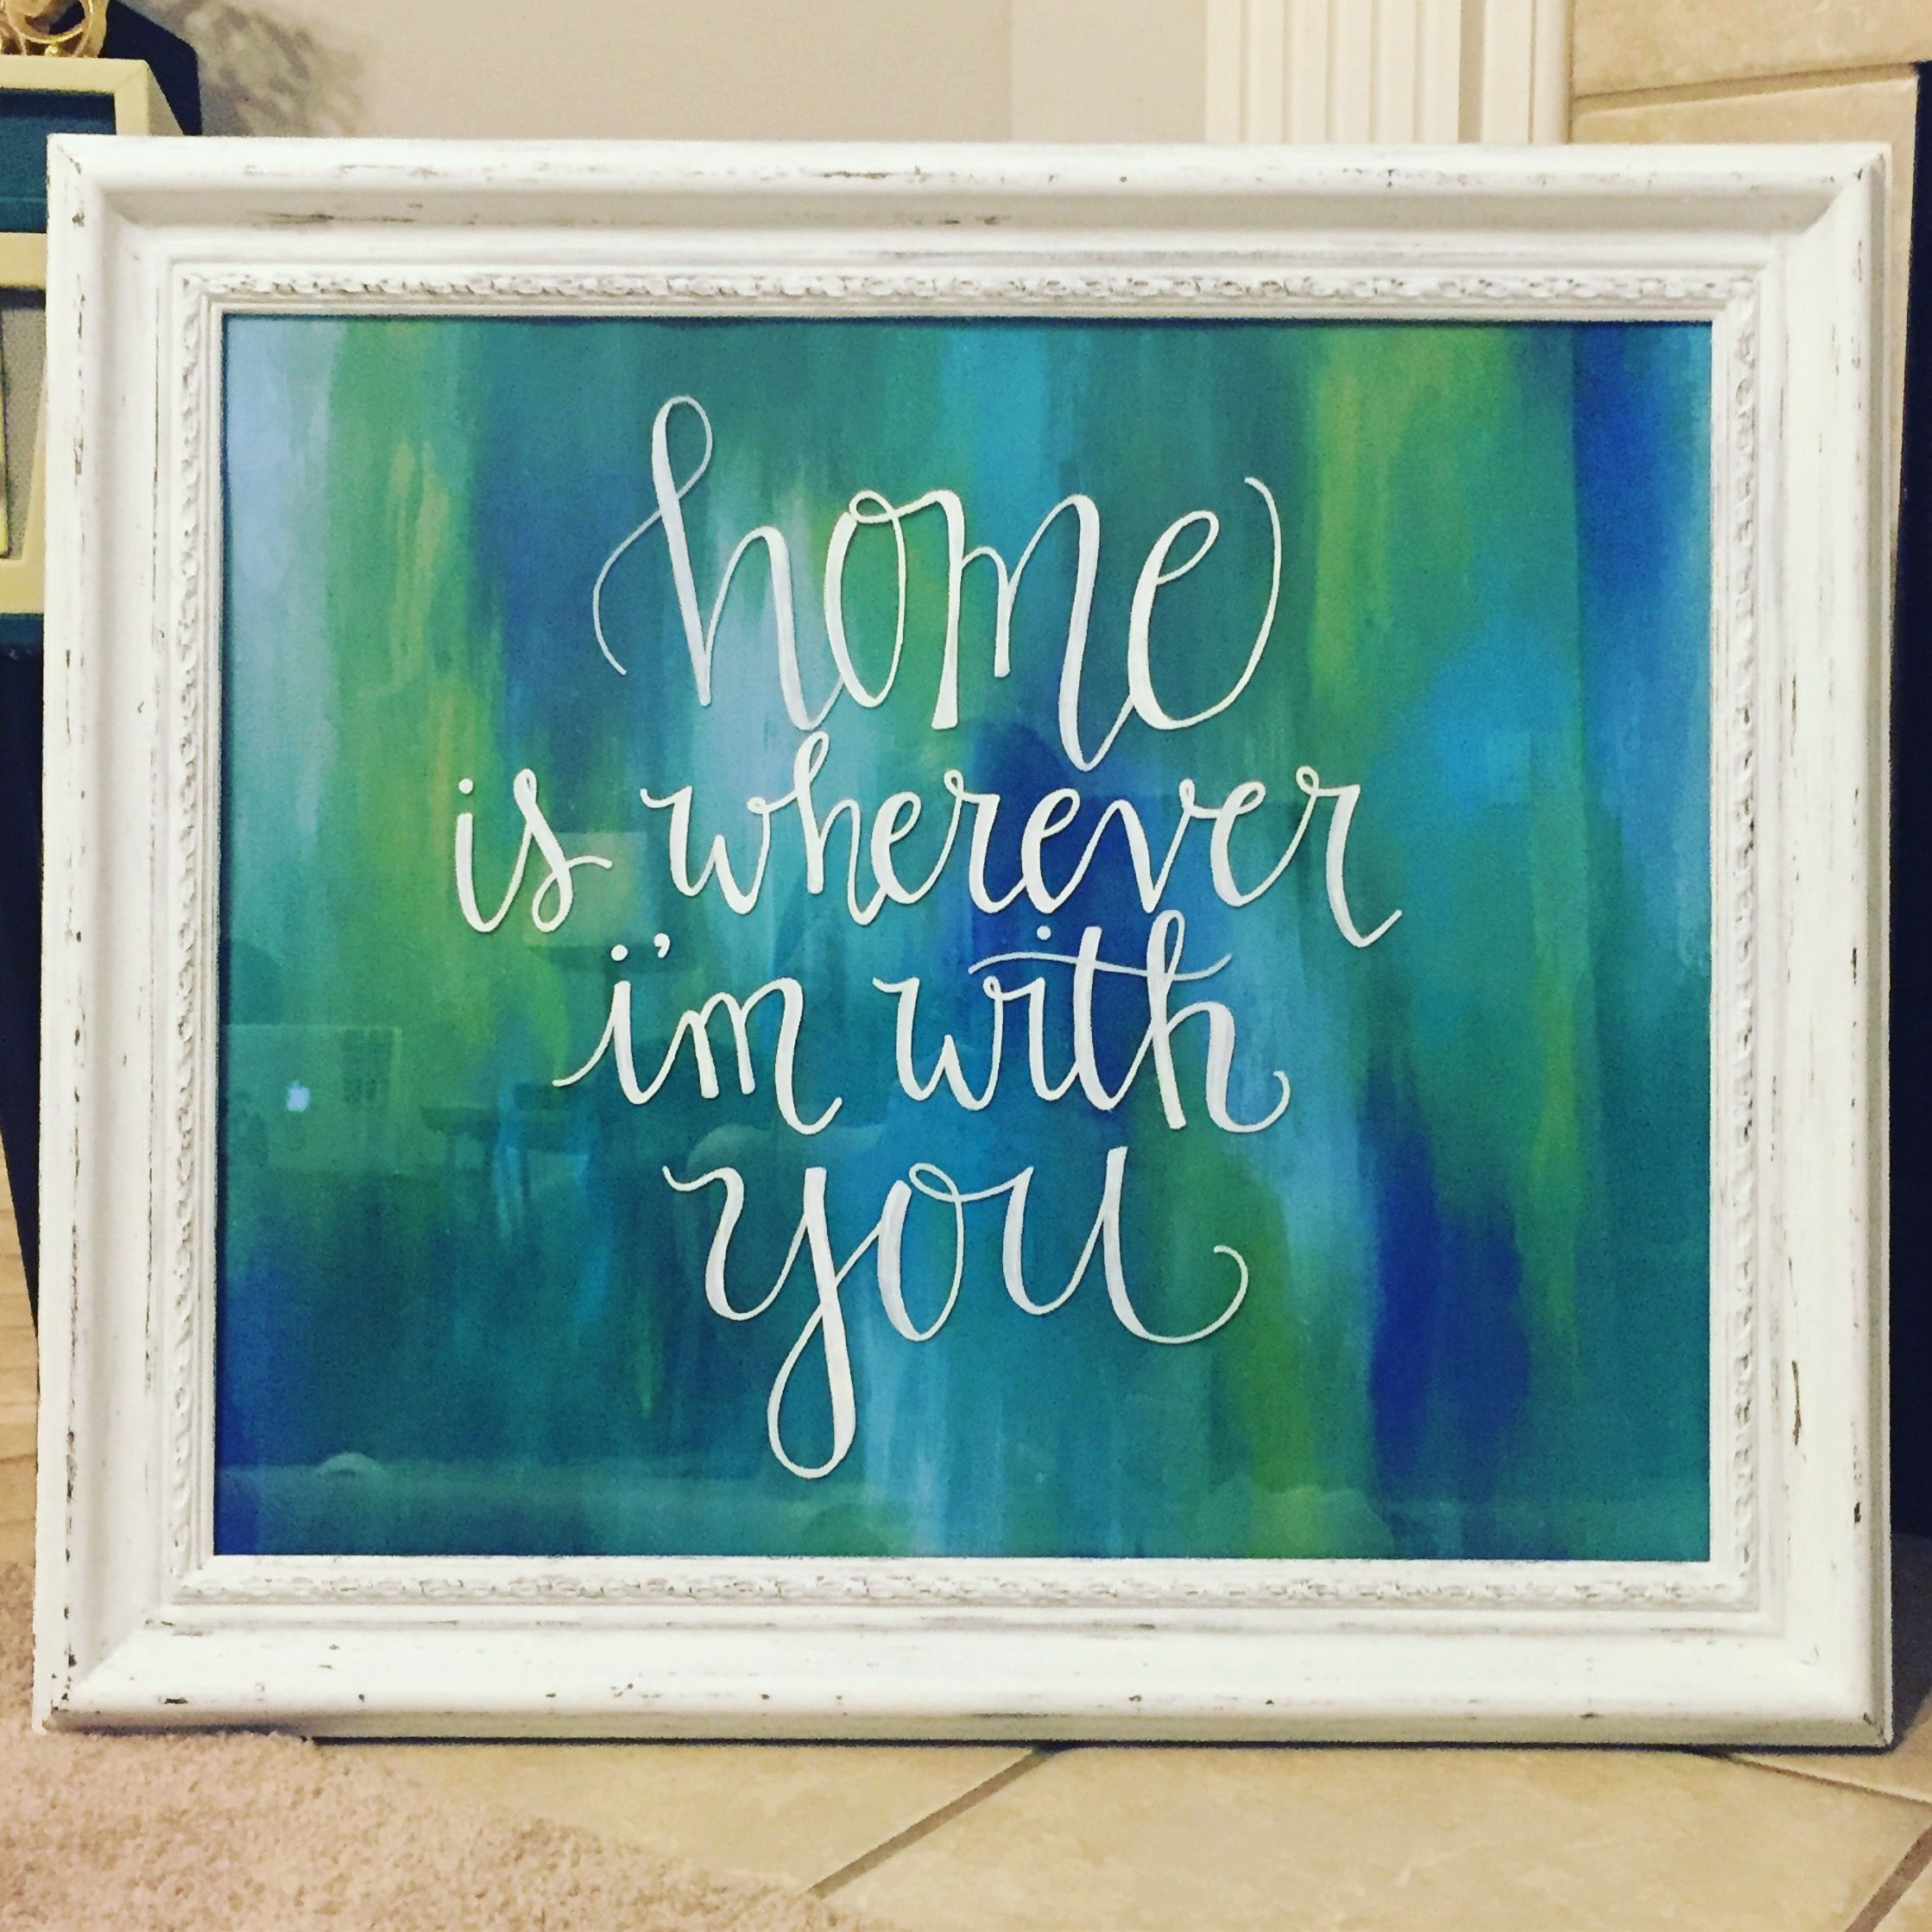 Diy Frame Thrift Store Find Painted With Acrylic Paint And